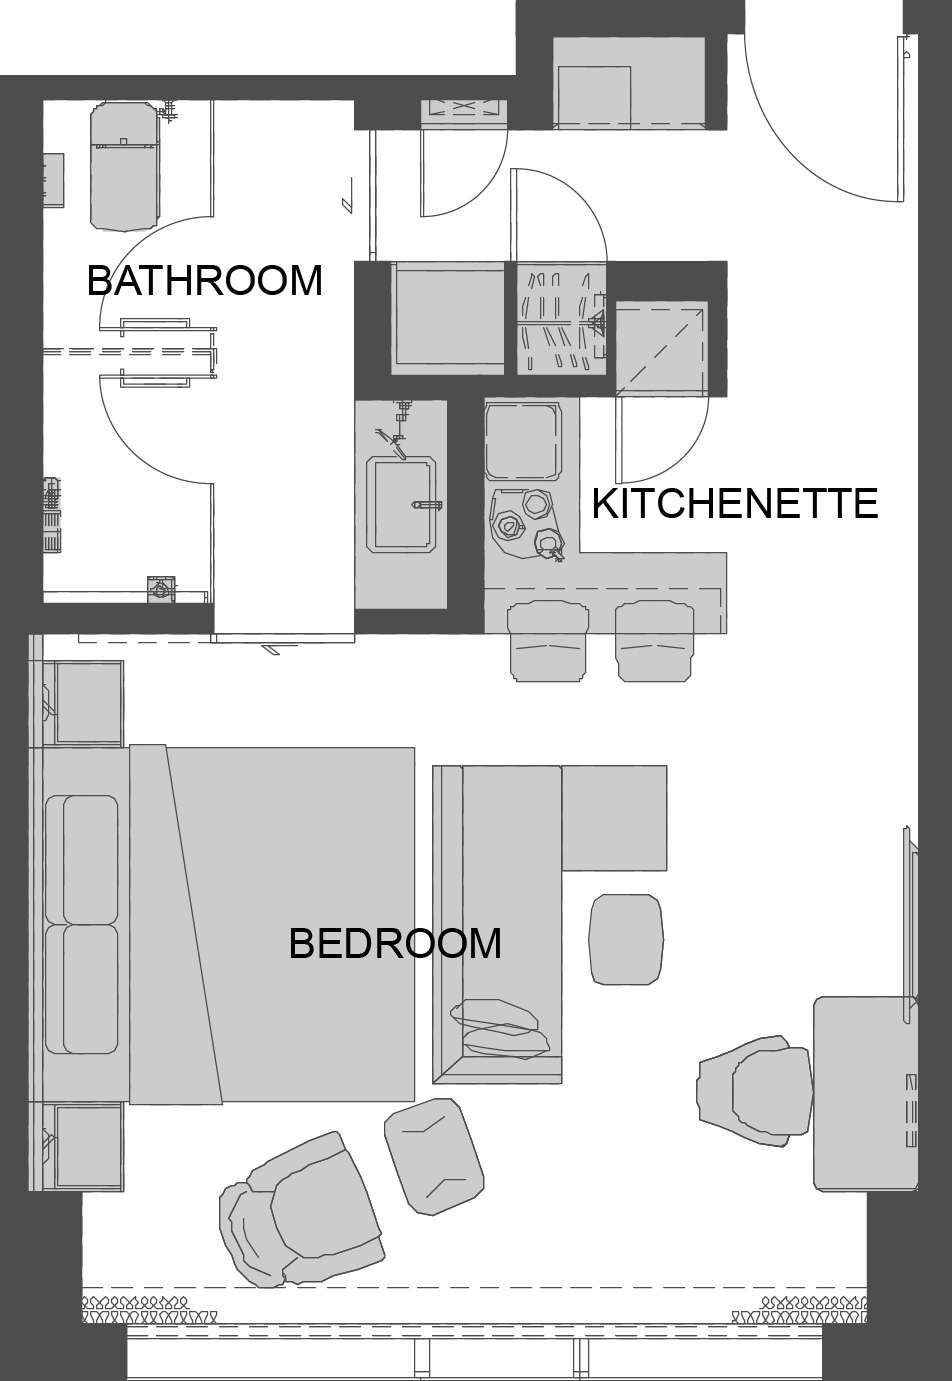 Image Result For Novotel Suites Plan Bedroom Layouts Home Suites Hotels Room